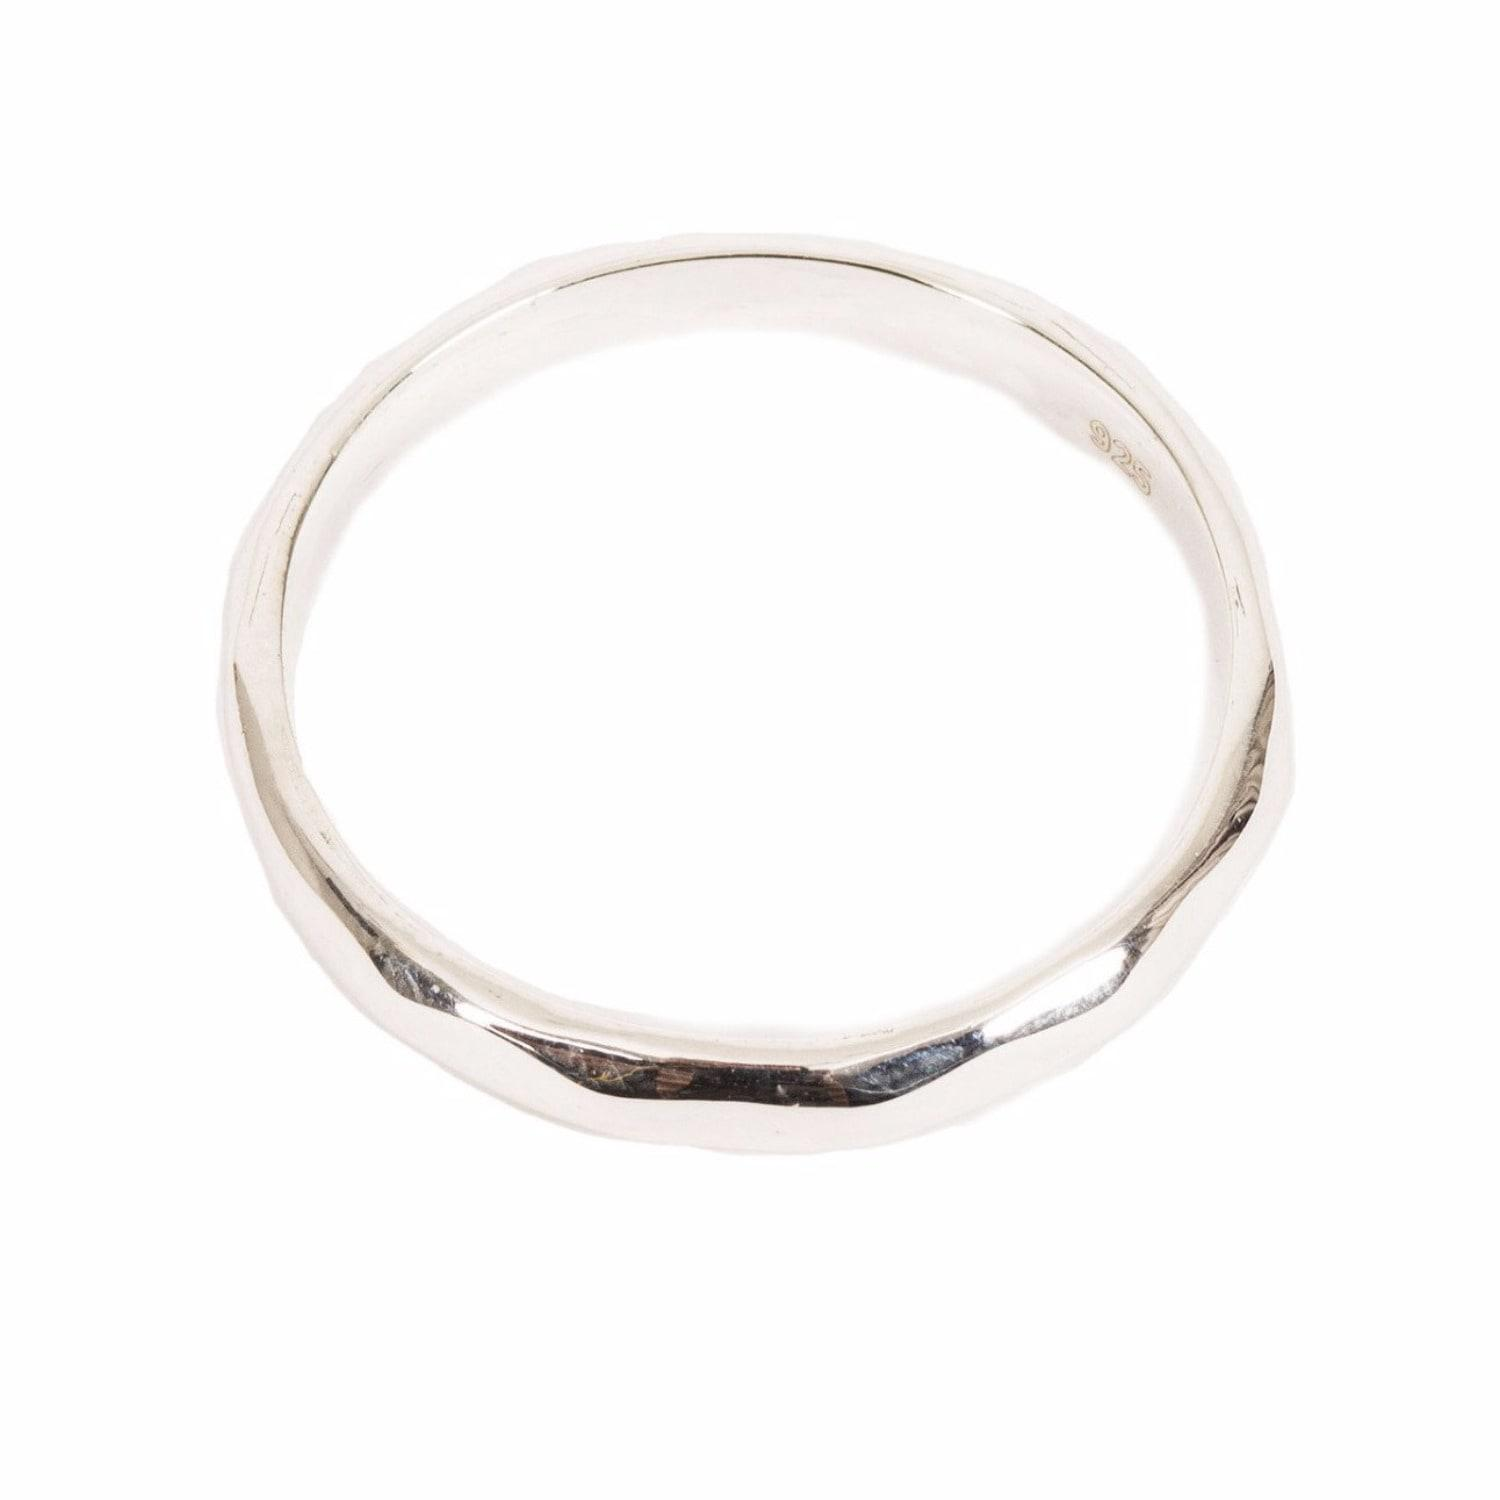 Neola Enigma Bangle Sterling Silver oUXHSz